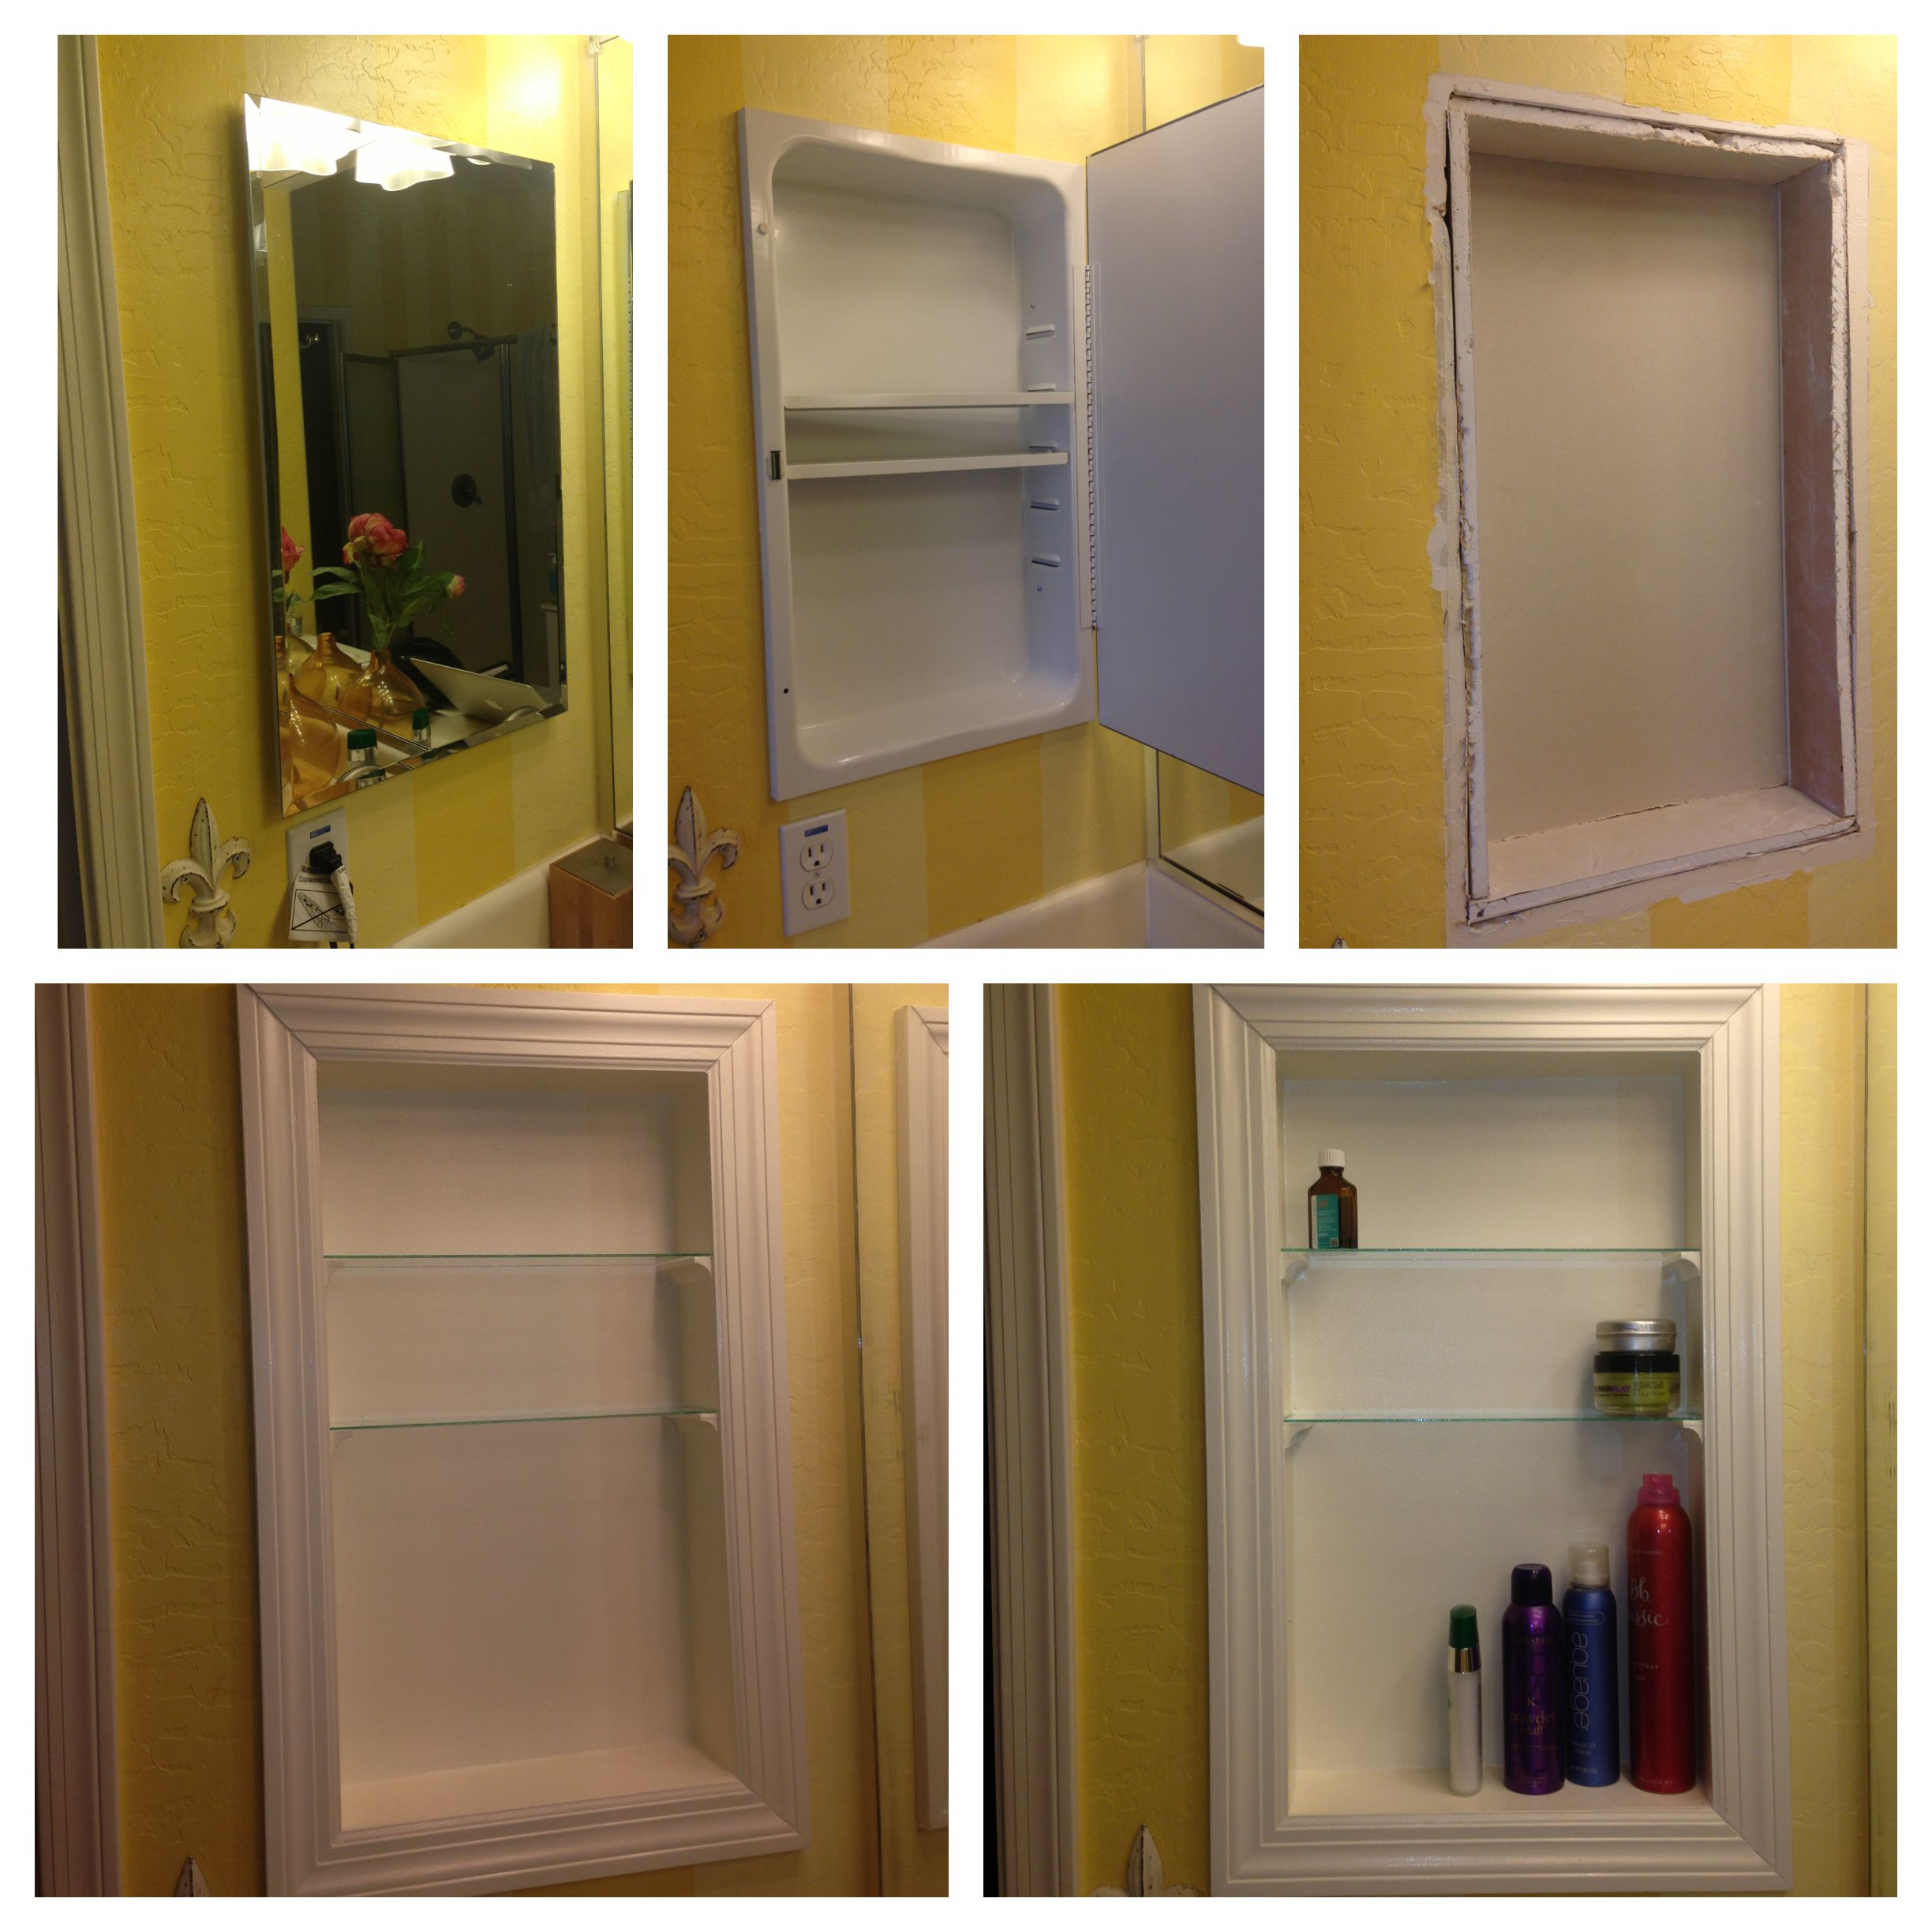 Converted Metal Medicine Cabinet Into Open Shelves I Was